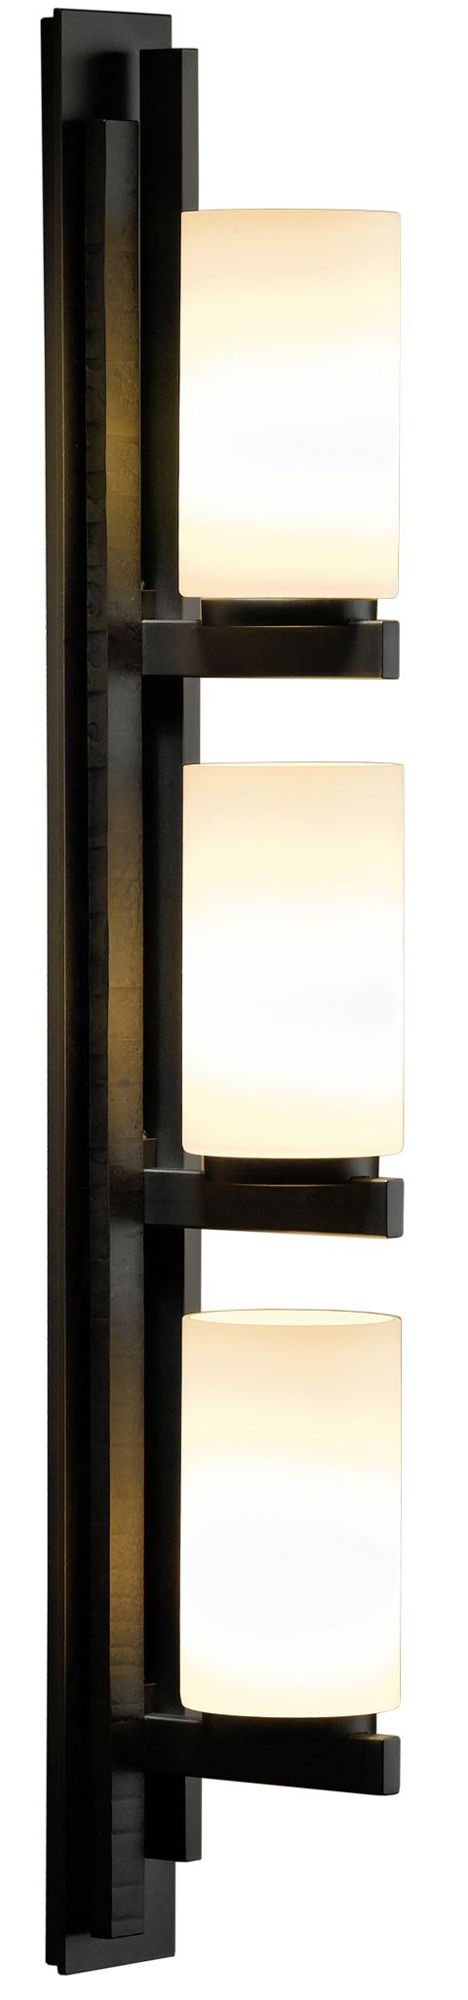 vertical bathroom vanity lights ondrian right vertical 3 light bathroom vanity light by 21195